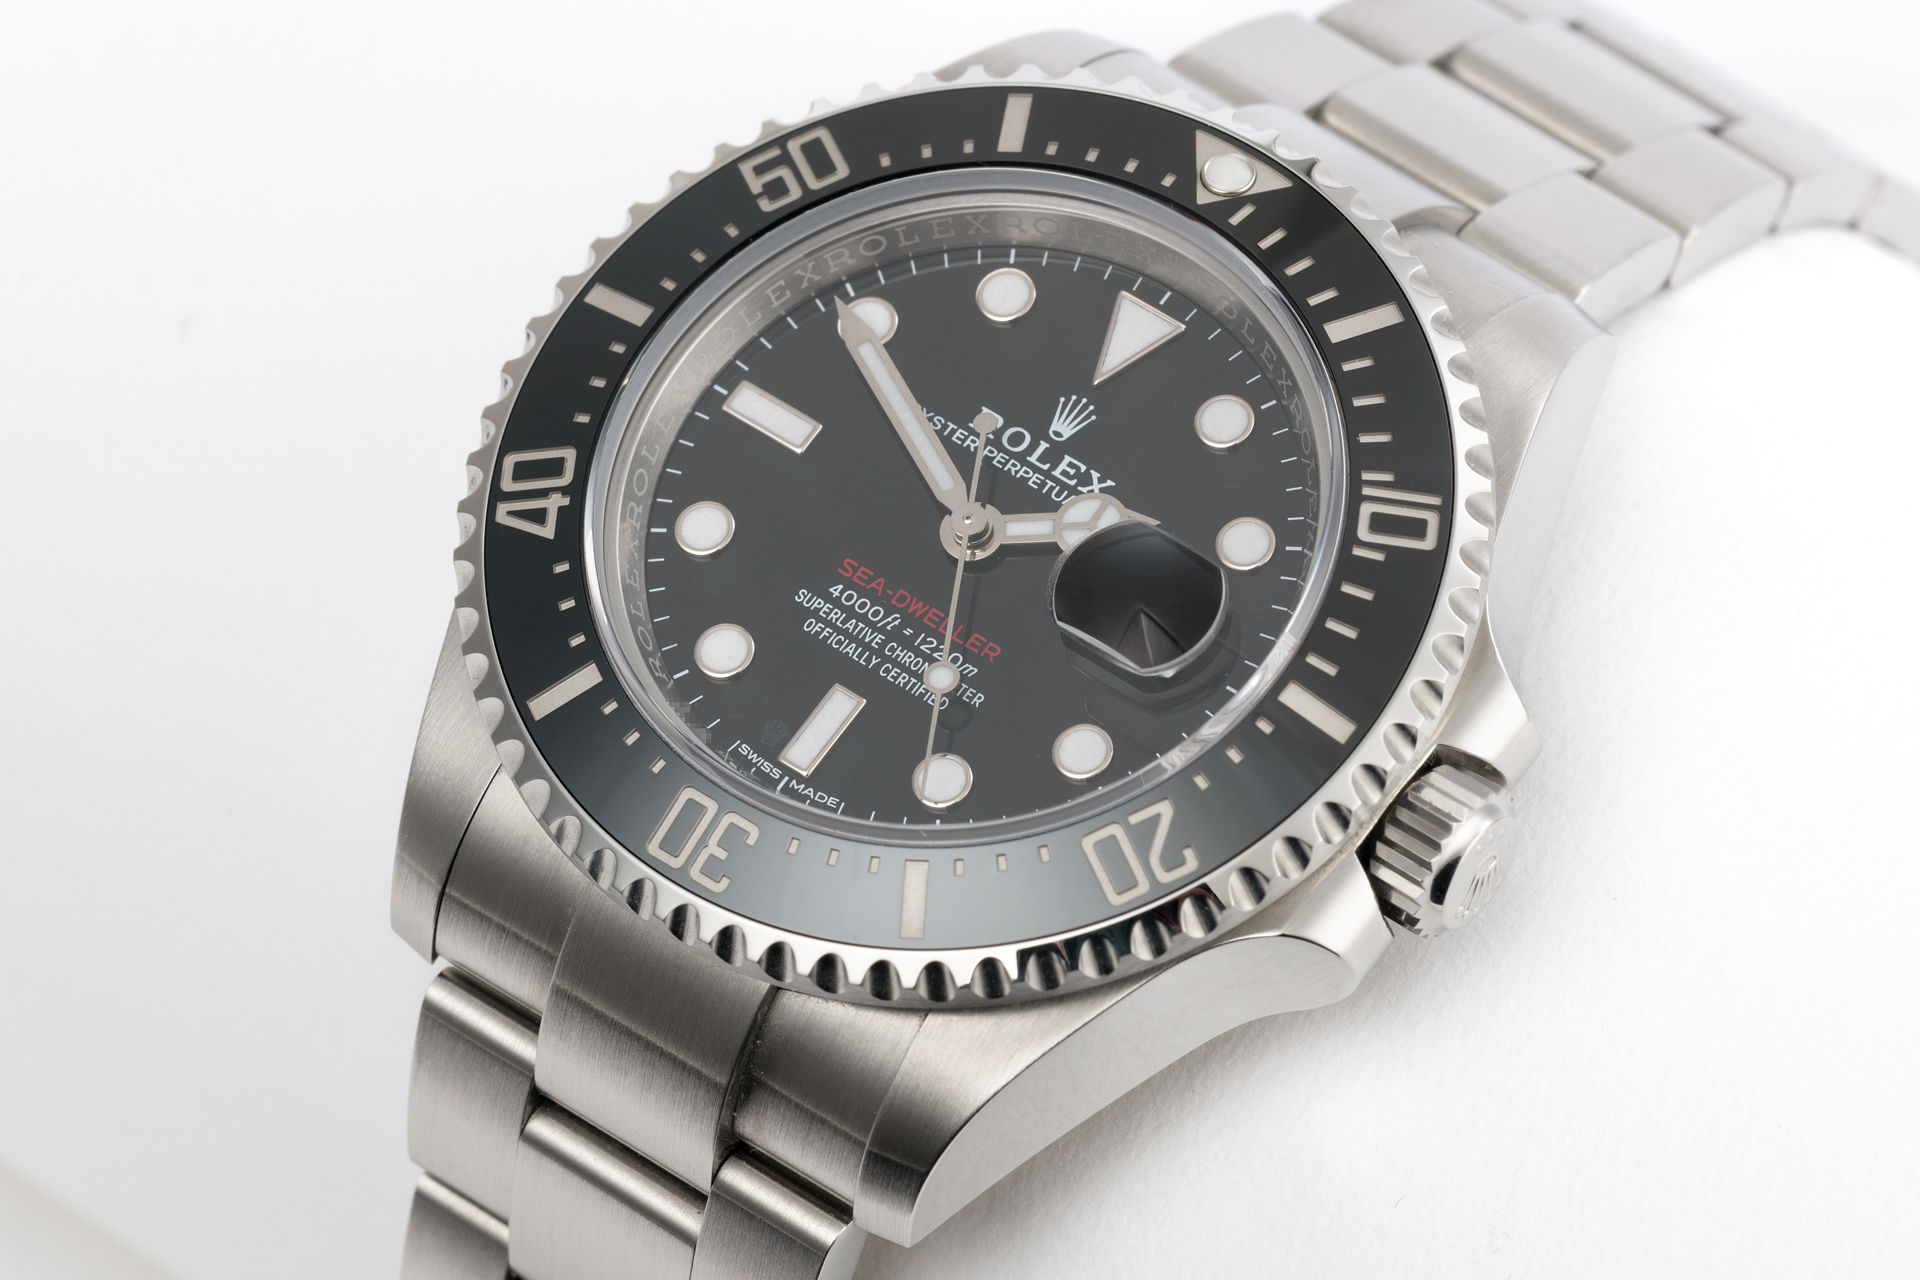 ref 126600 | 'Rolex 5 Year Warranty' | Rolex Sea-Dweller